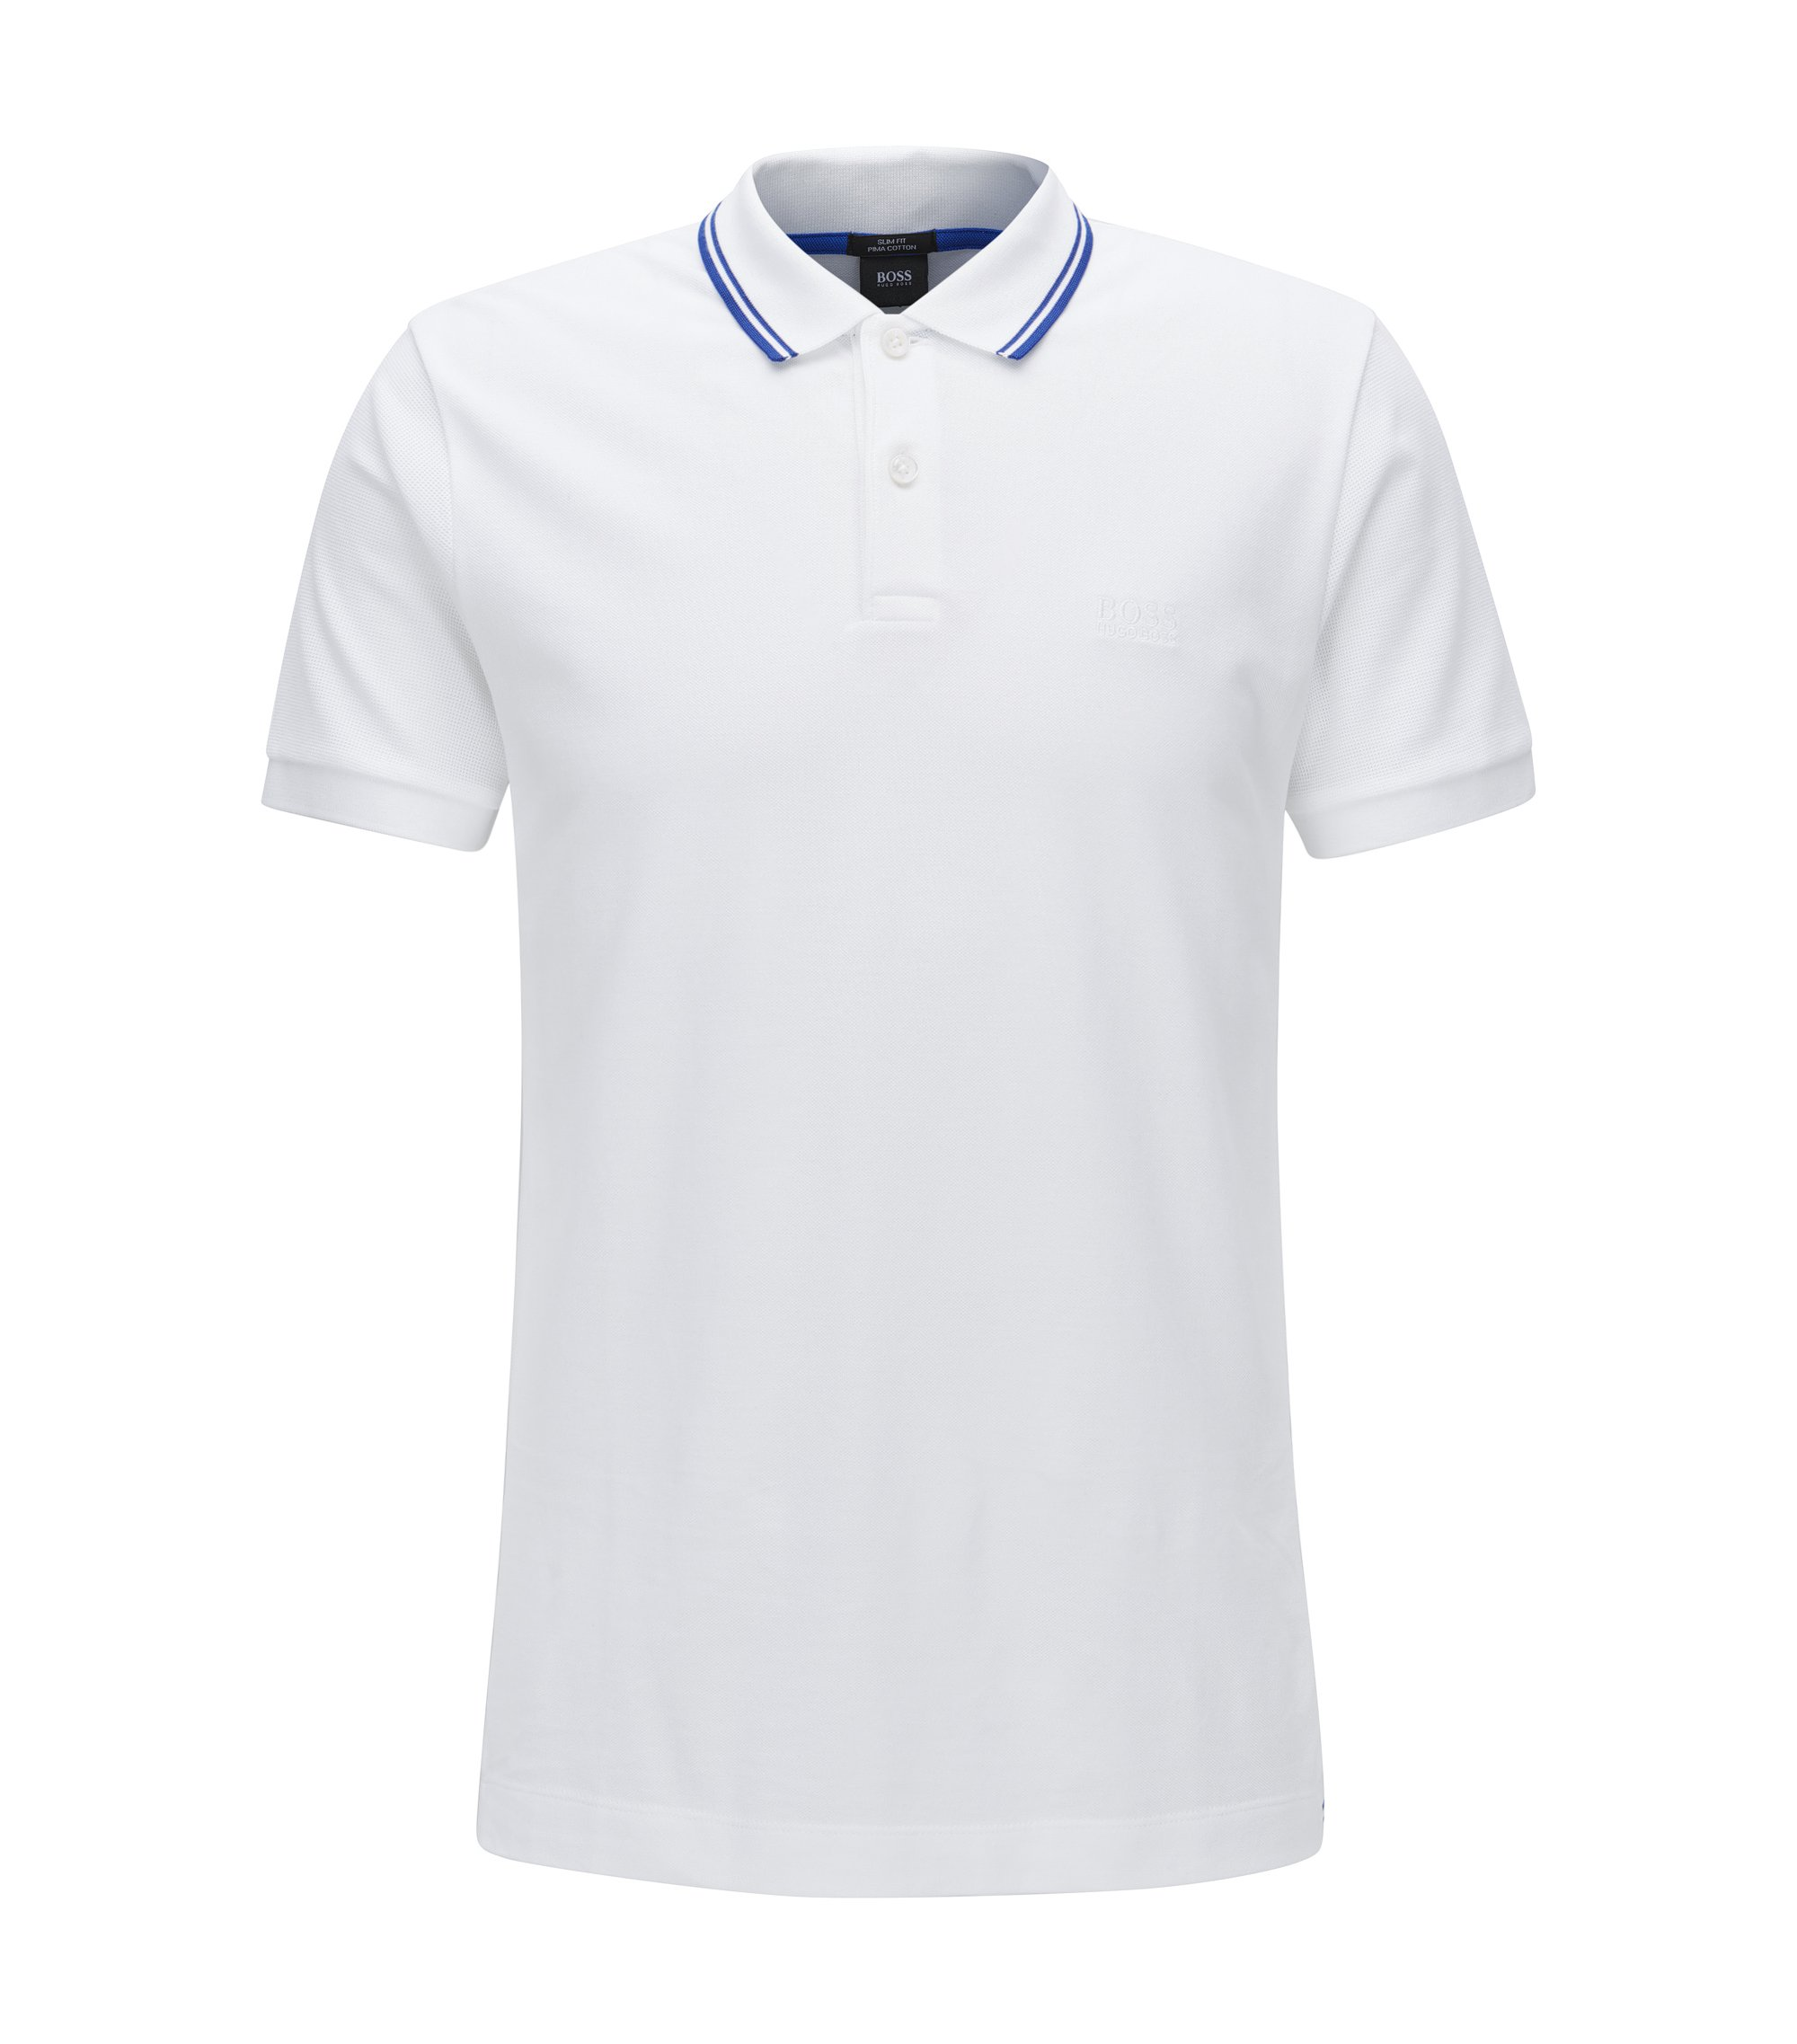 Piqué Pima Cotton Polo Shirt, Slim Fit | Phillipson, White